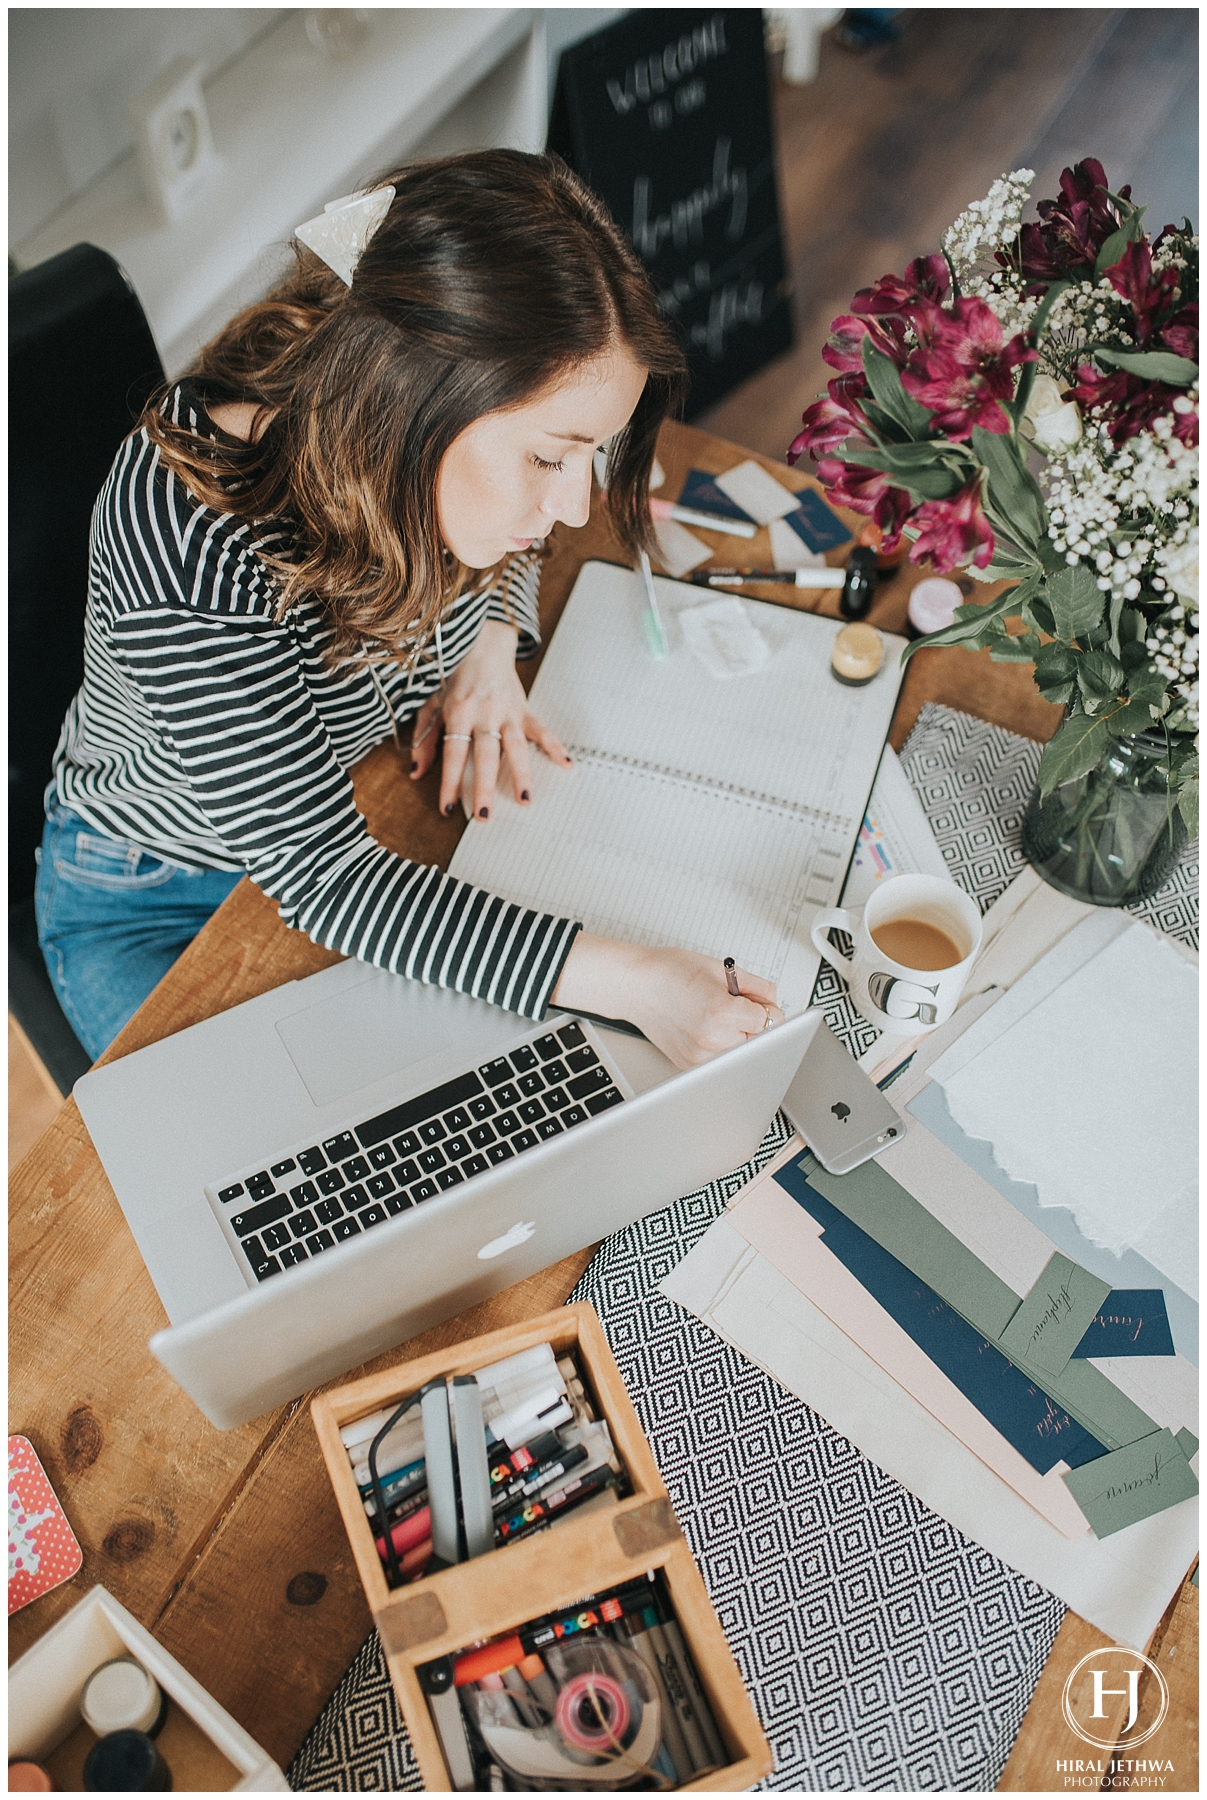 Personal Brand Photography Calligrapher Working At Her Desk